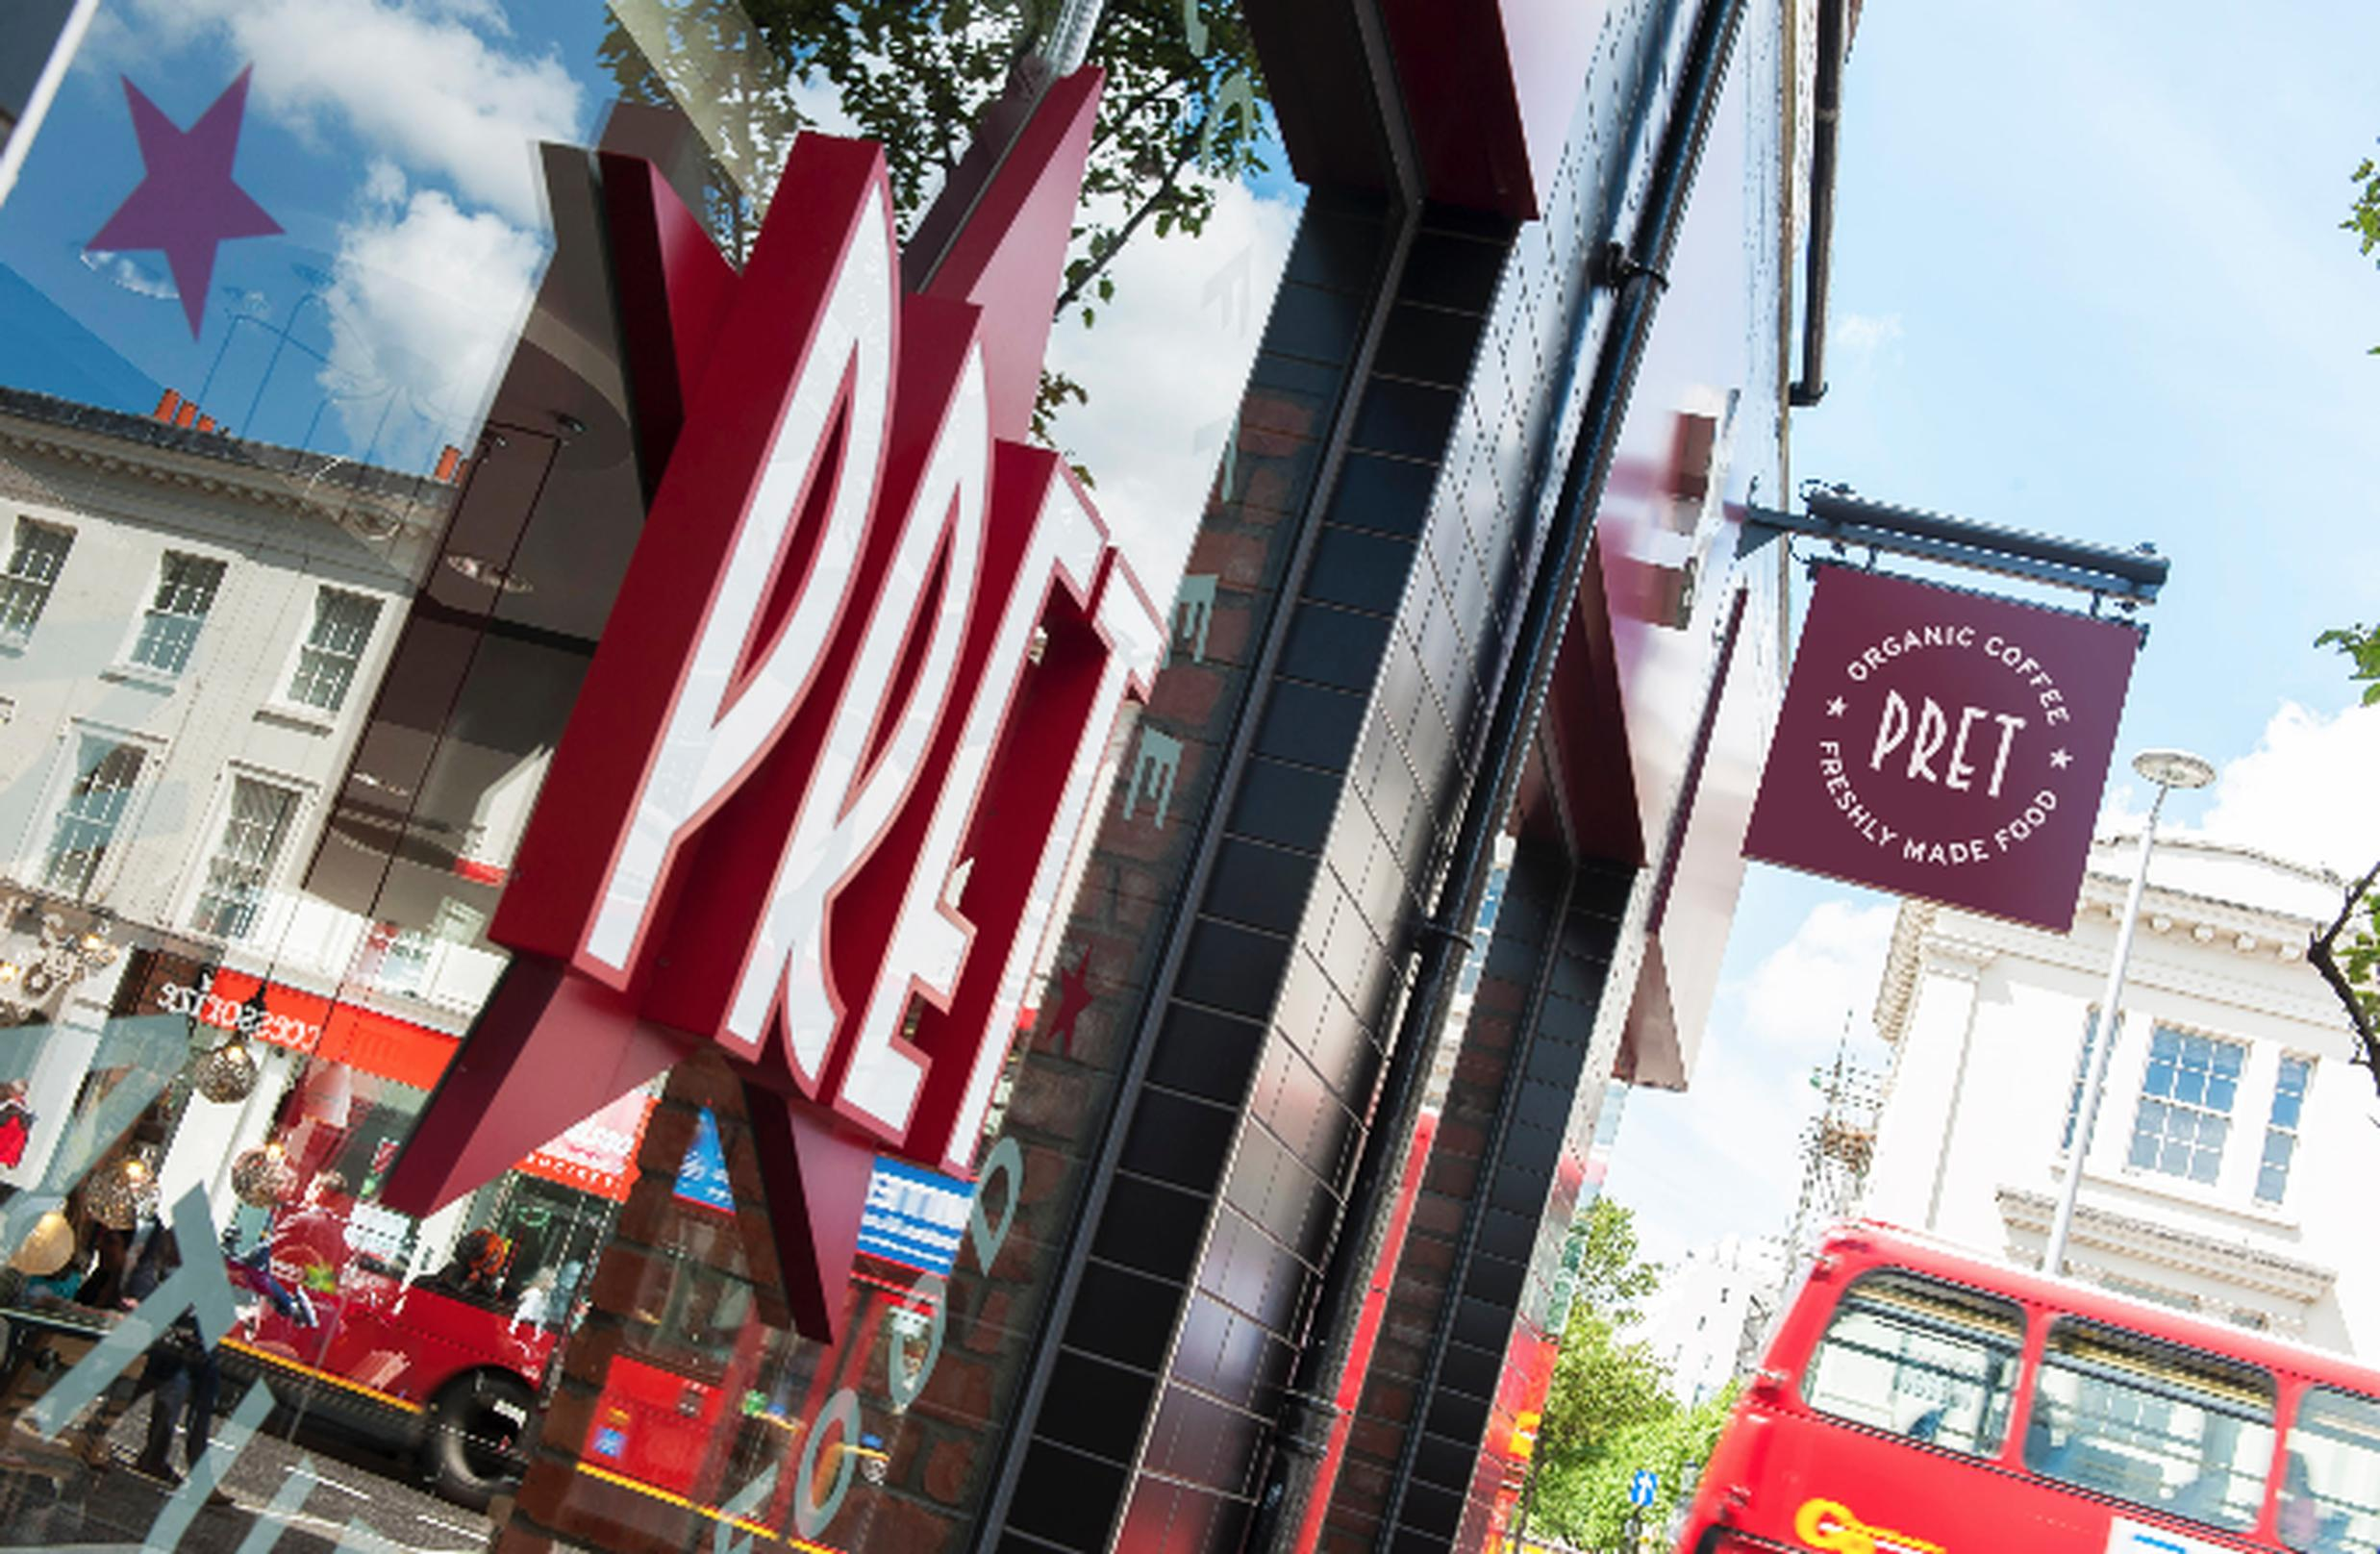 Pret A Manger orders NSL identity checks